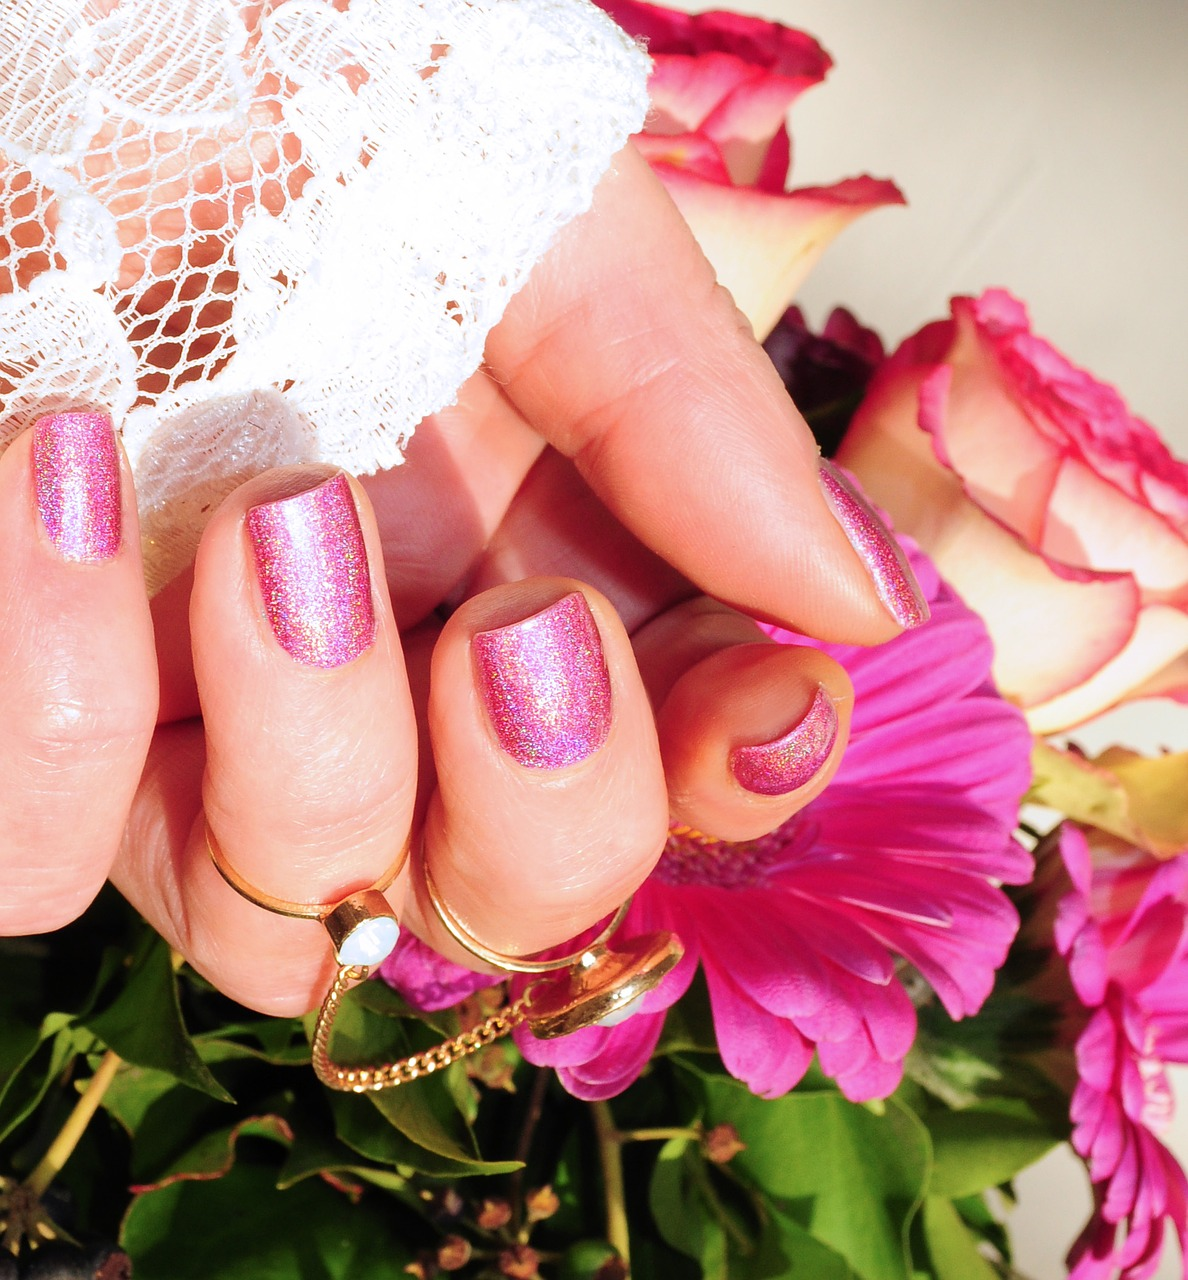 remedies for stronger nails